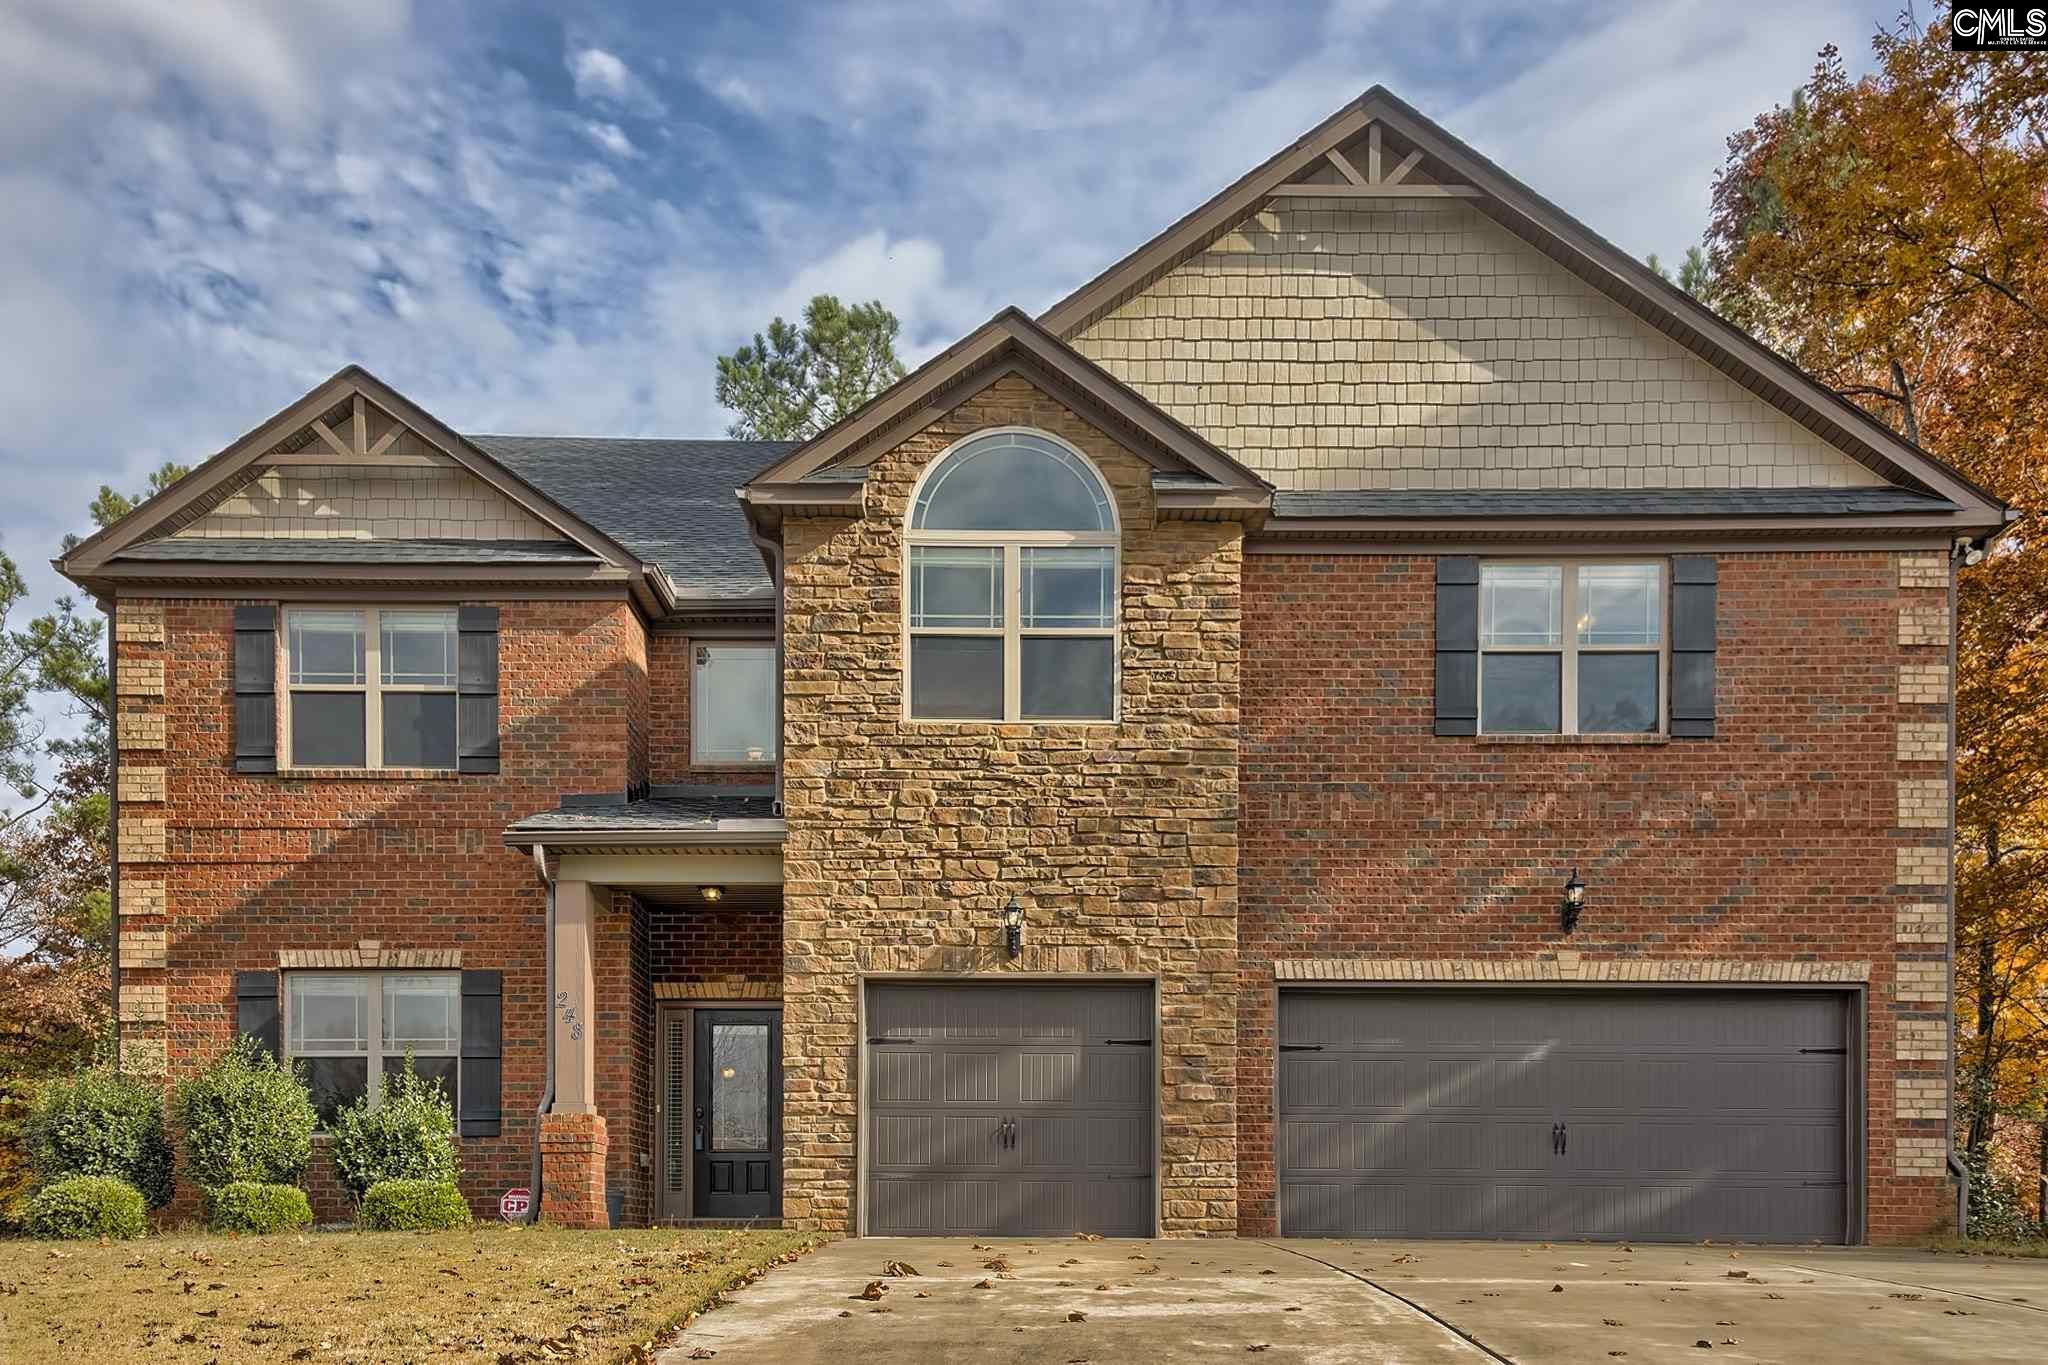 248 Winding Oak Blythewood, SC 29016